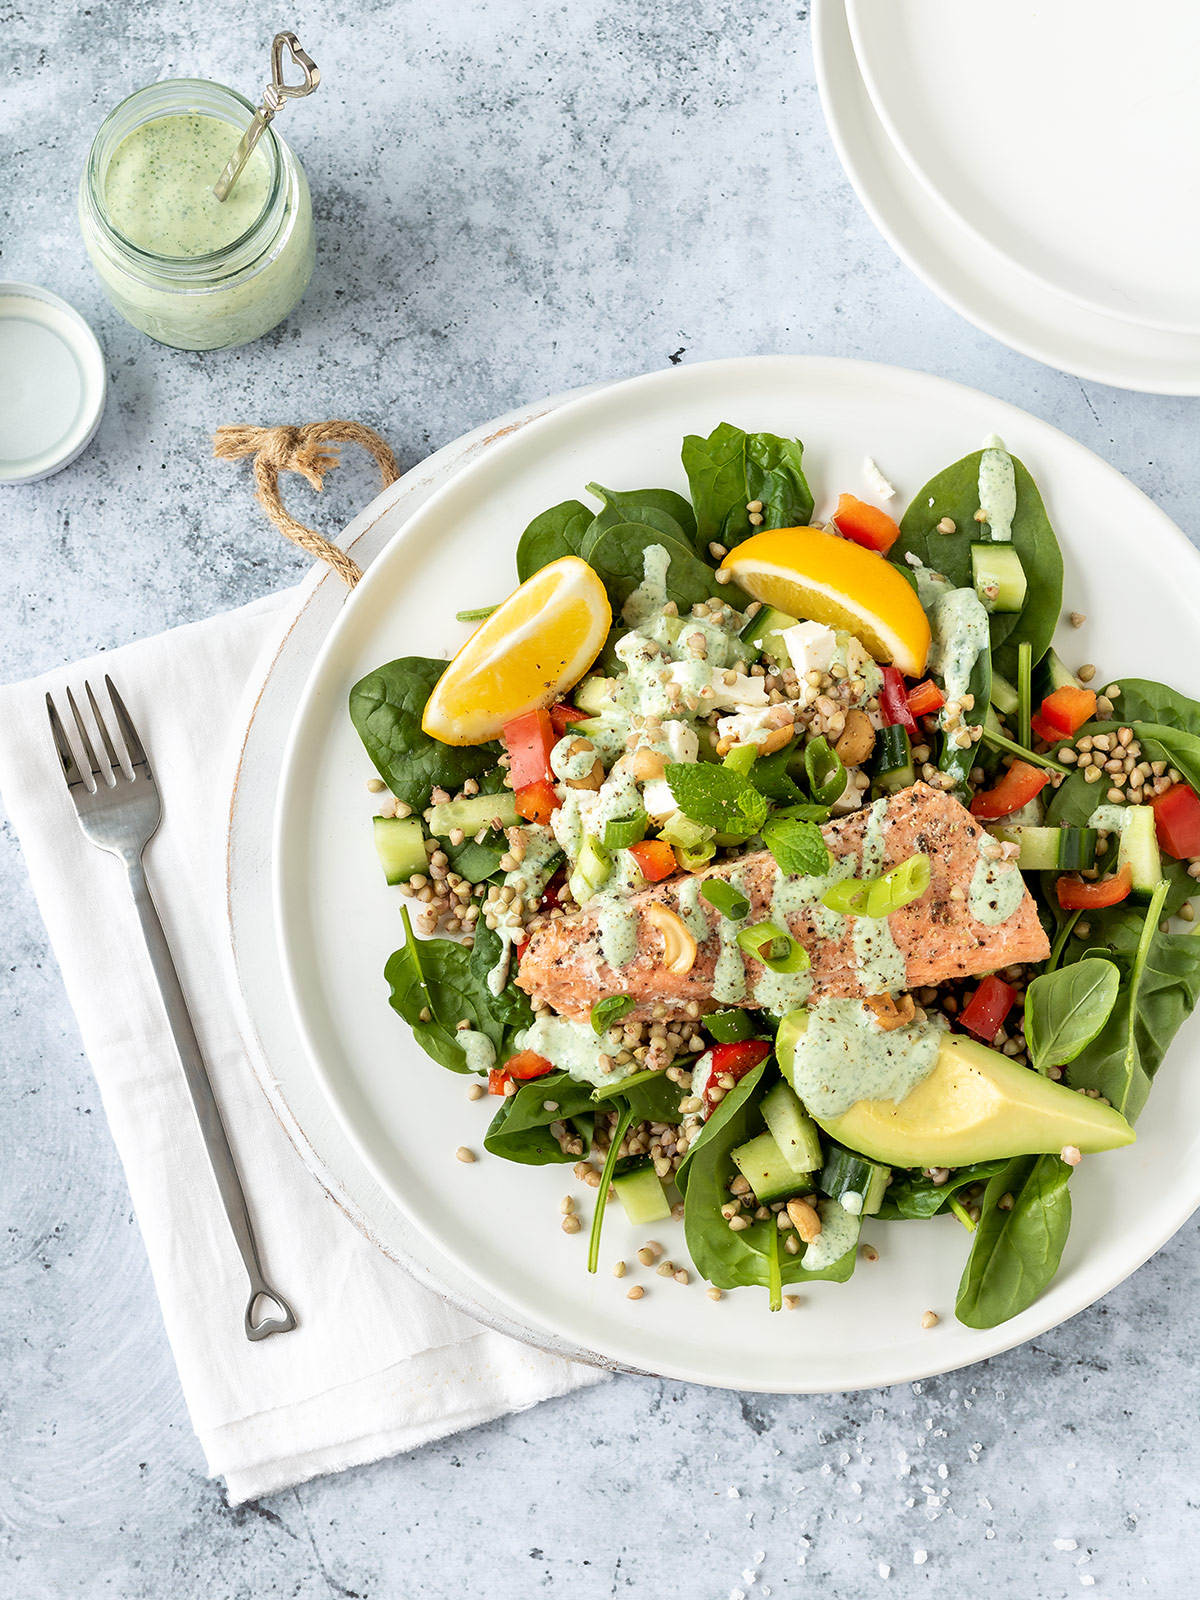 Salmon and buckwheat salad with green goddess dressing.